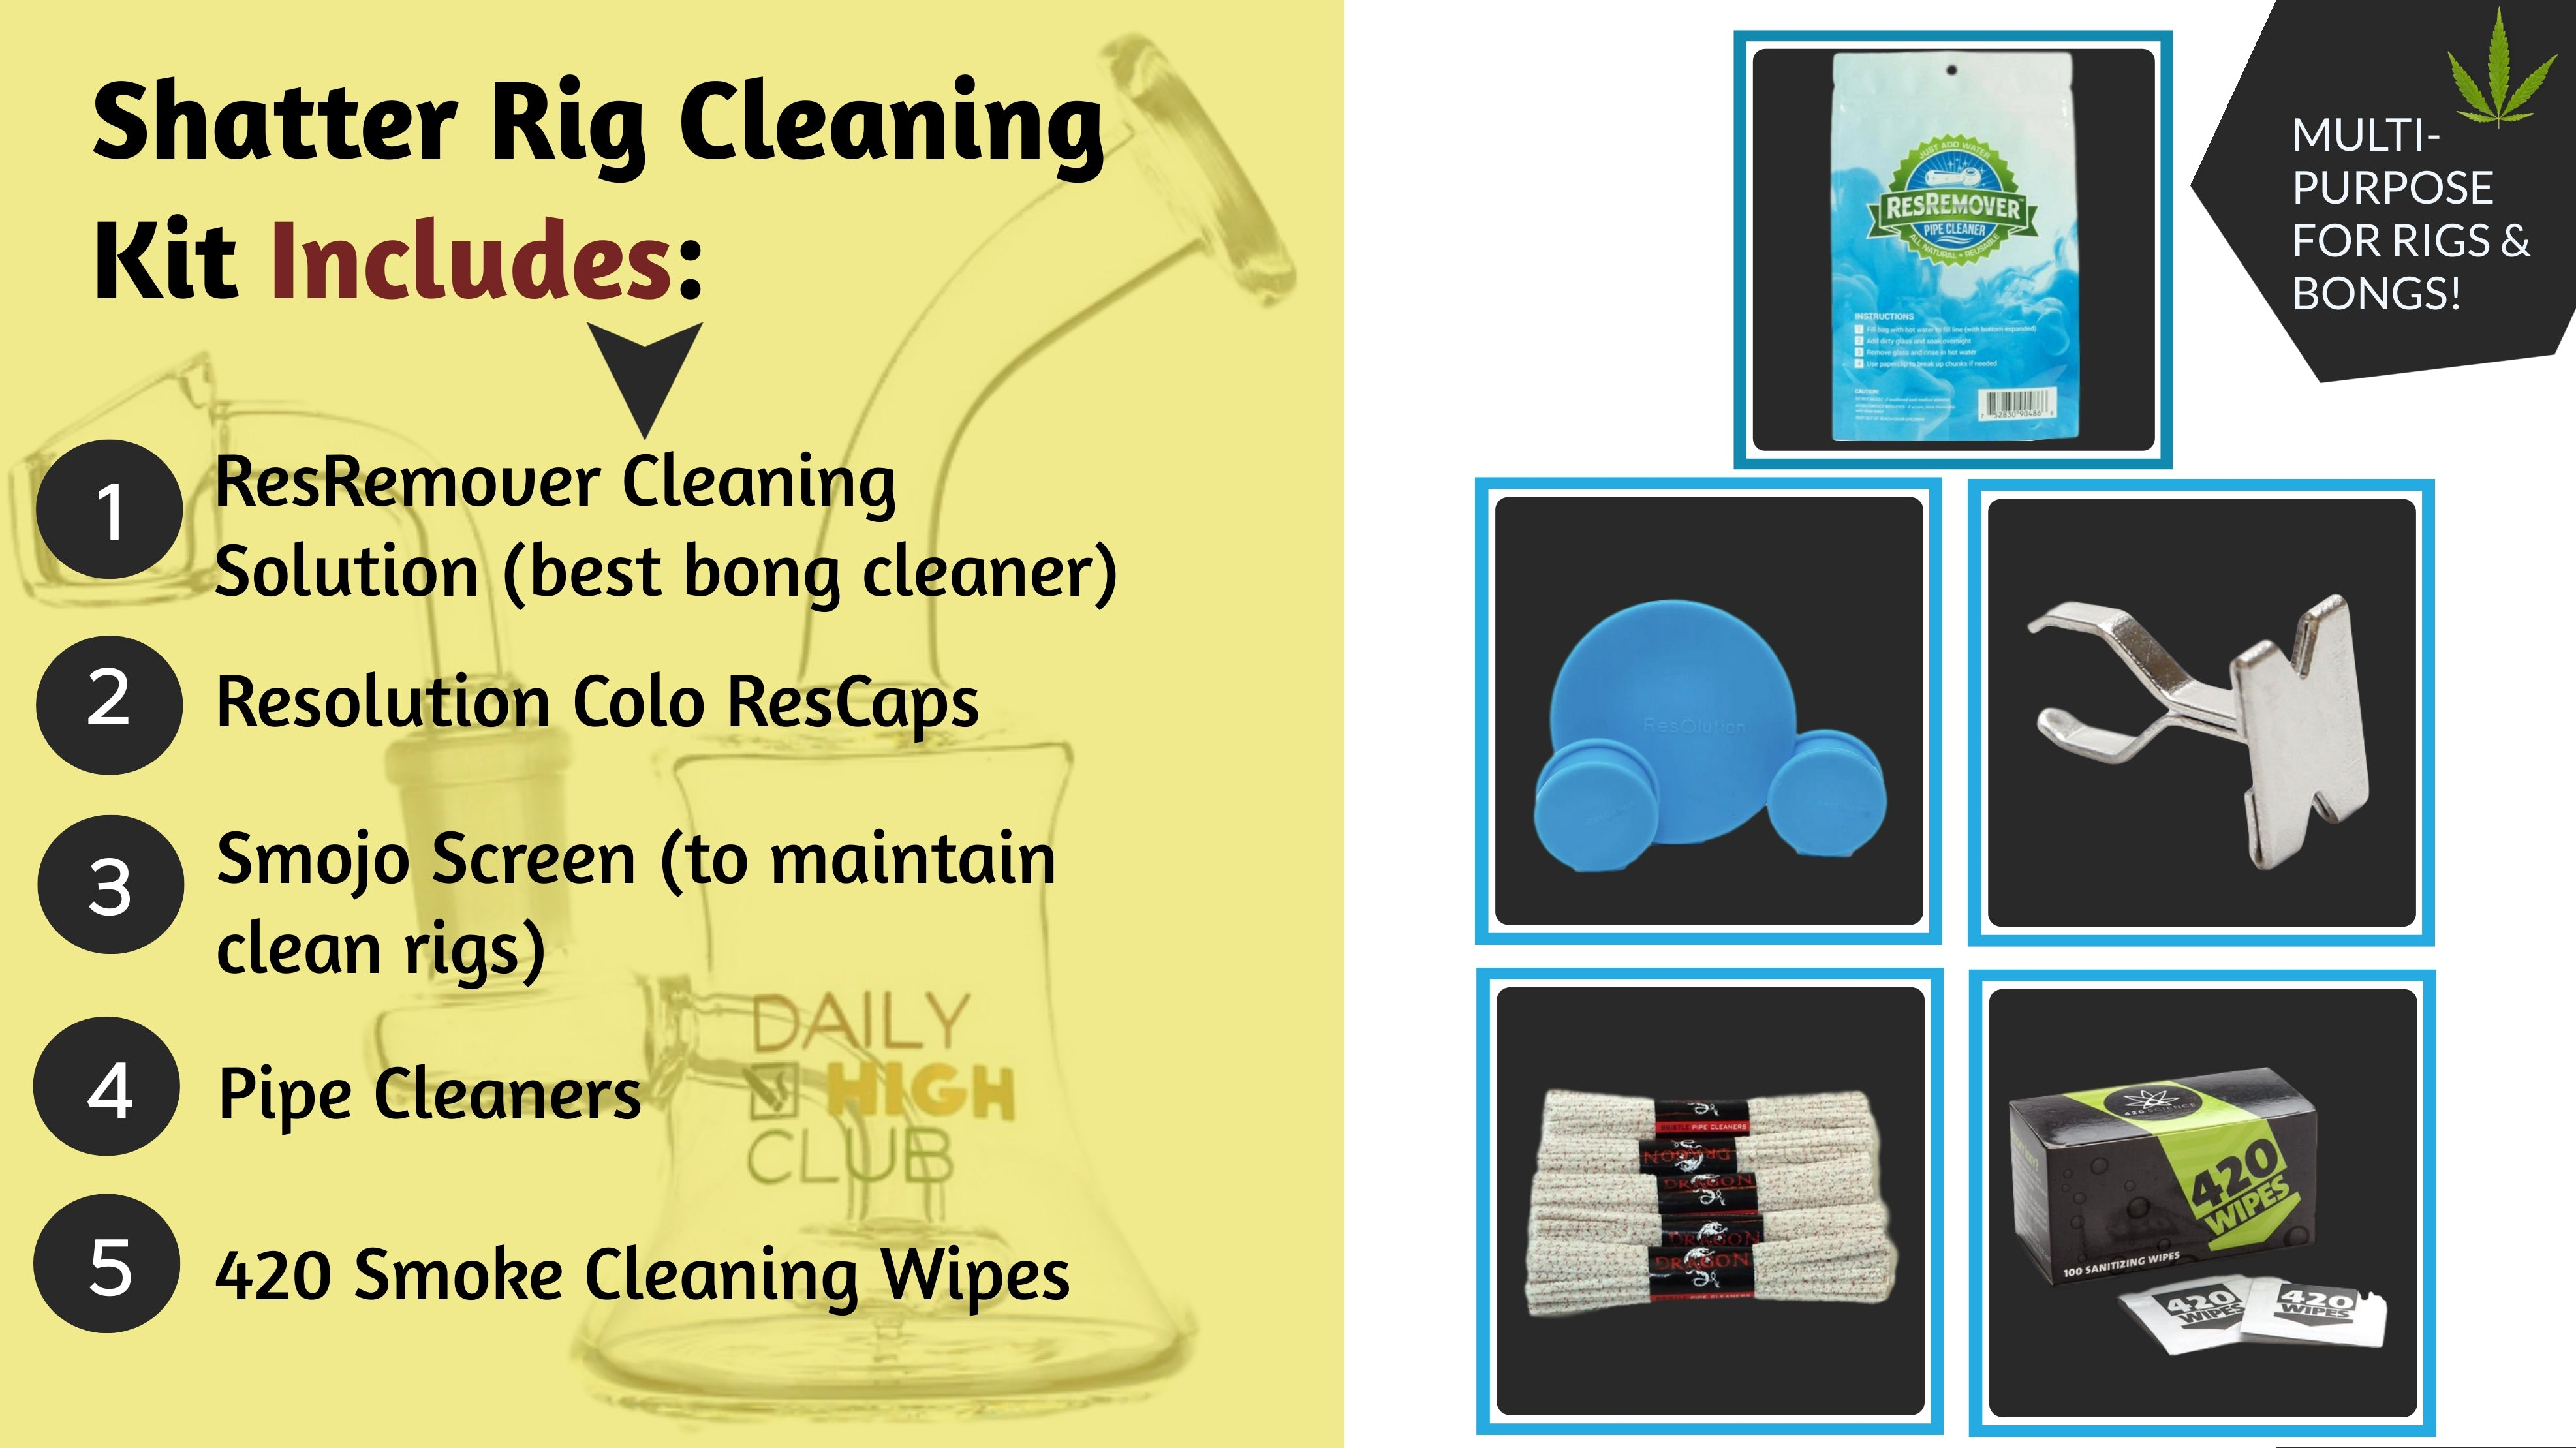 shatter rig cleaning kit